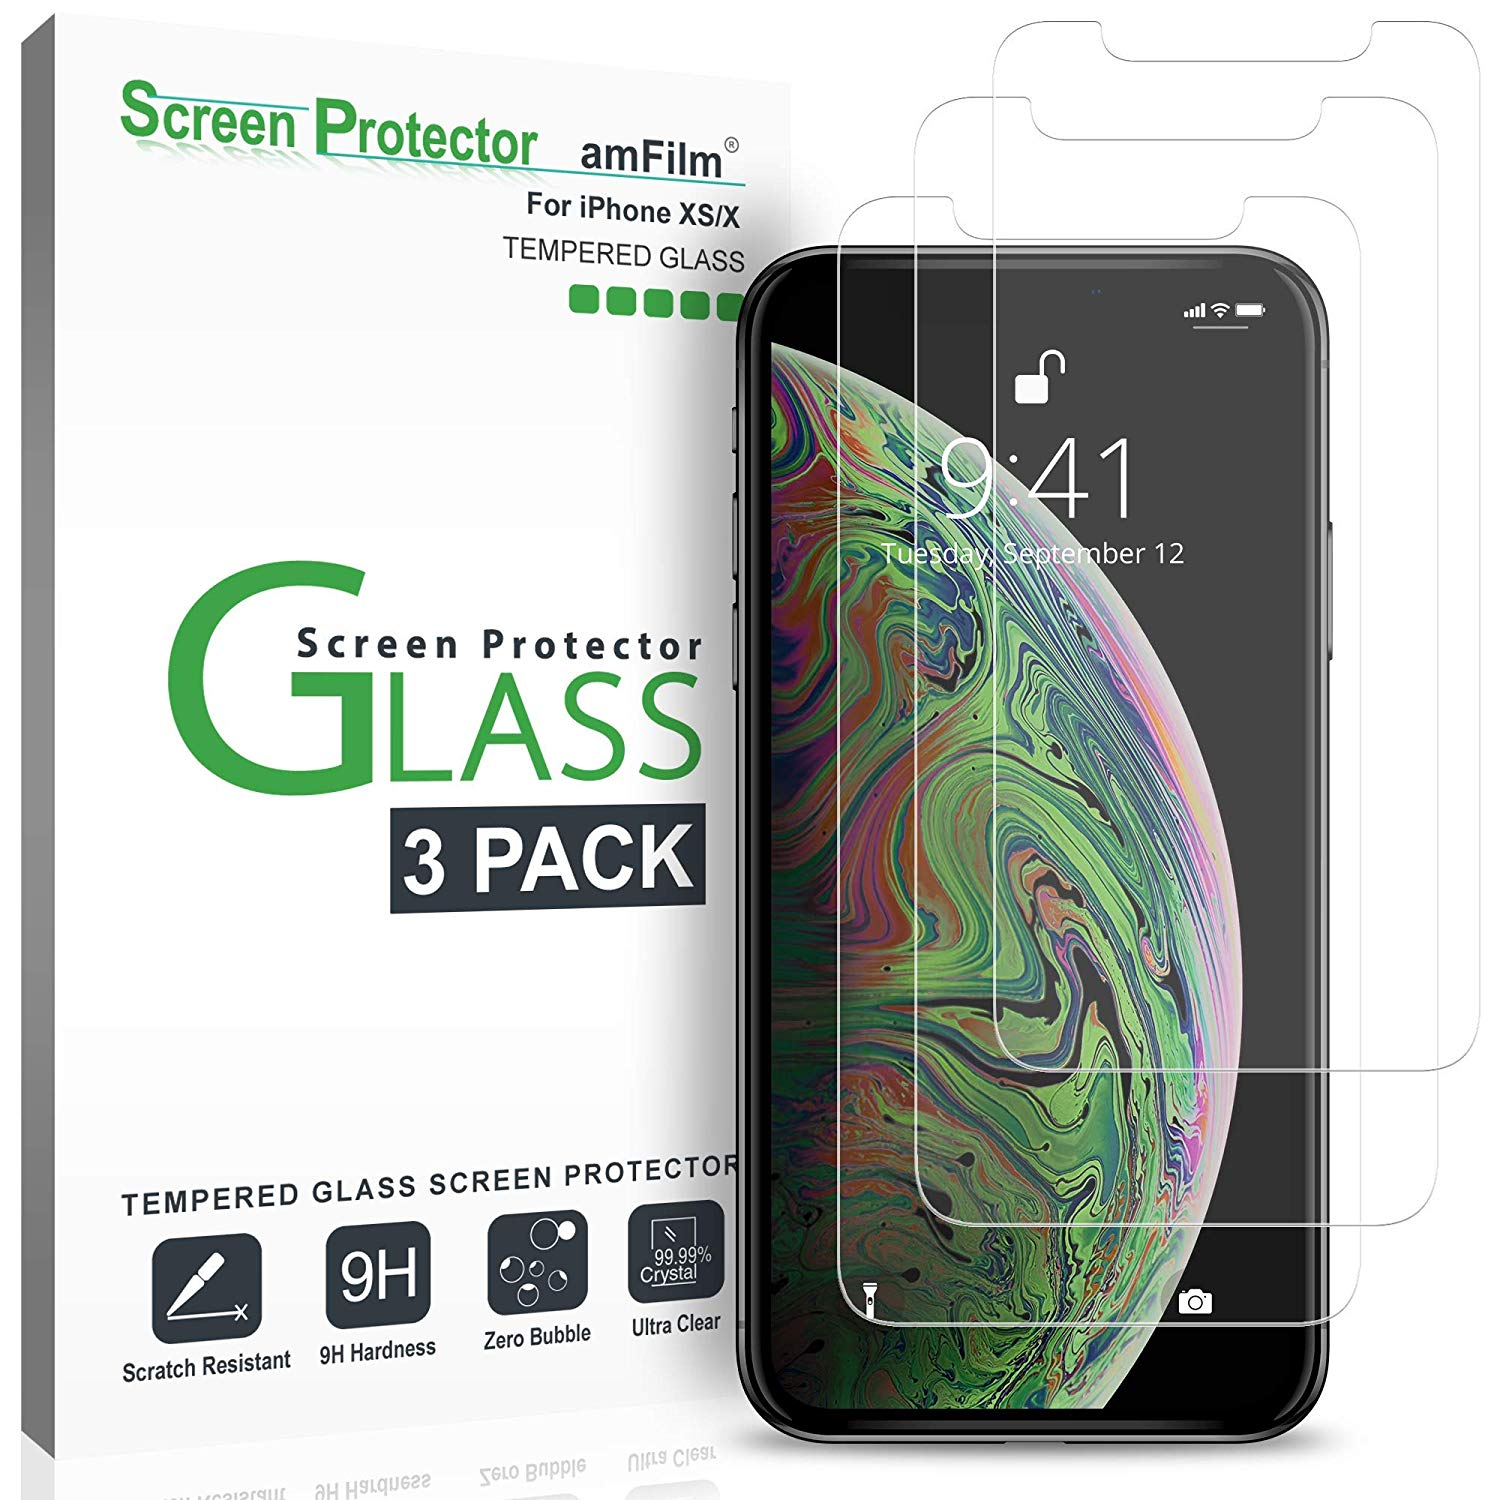 iPhone XS/X 3-Pack Screen Protector Glass